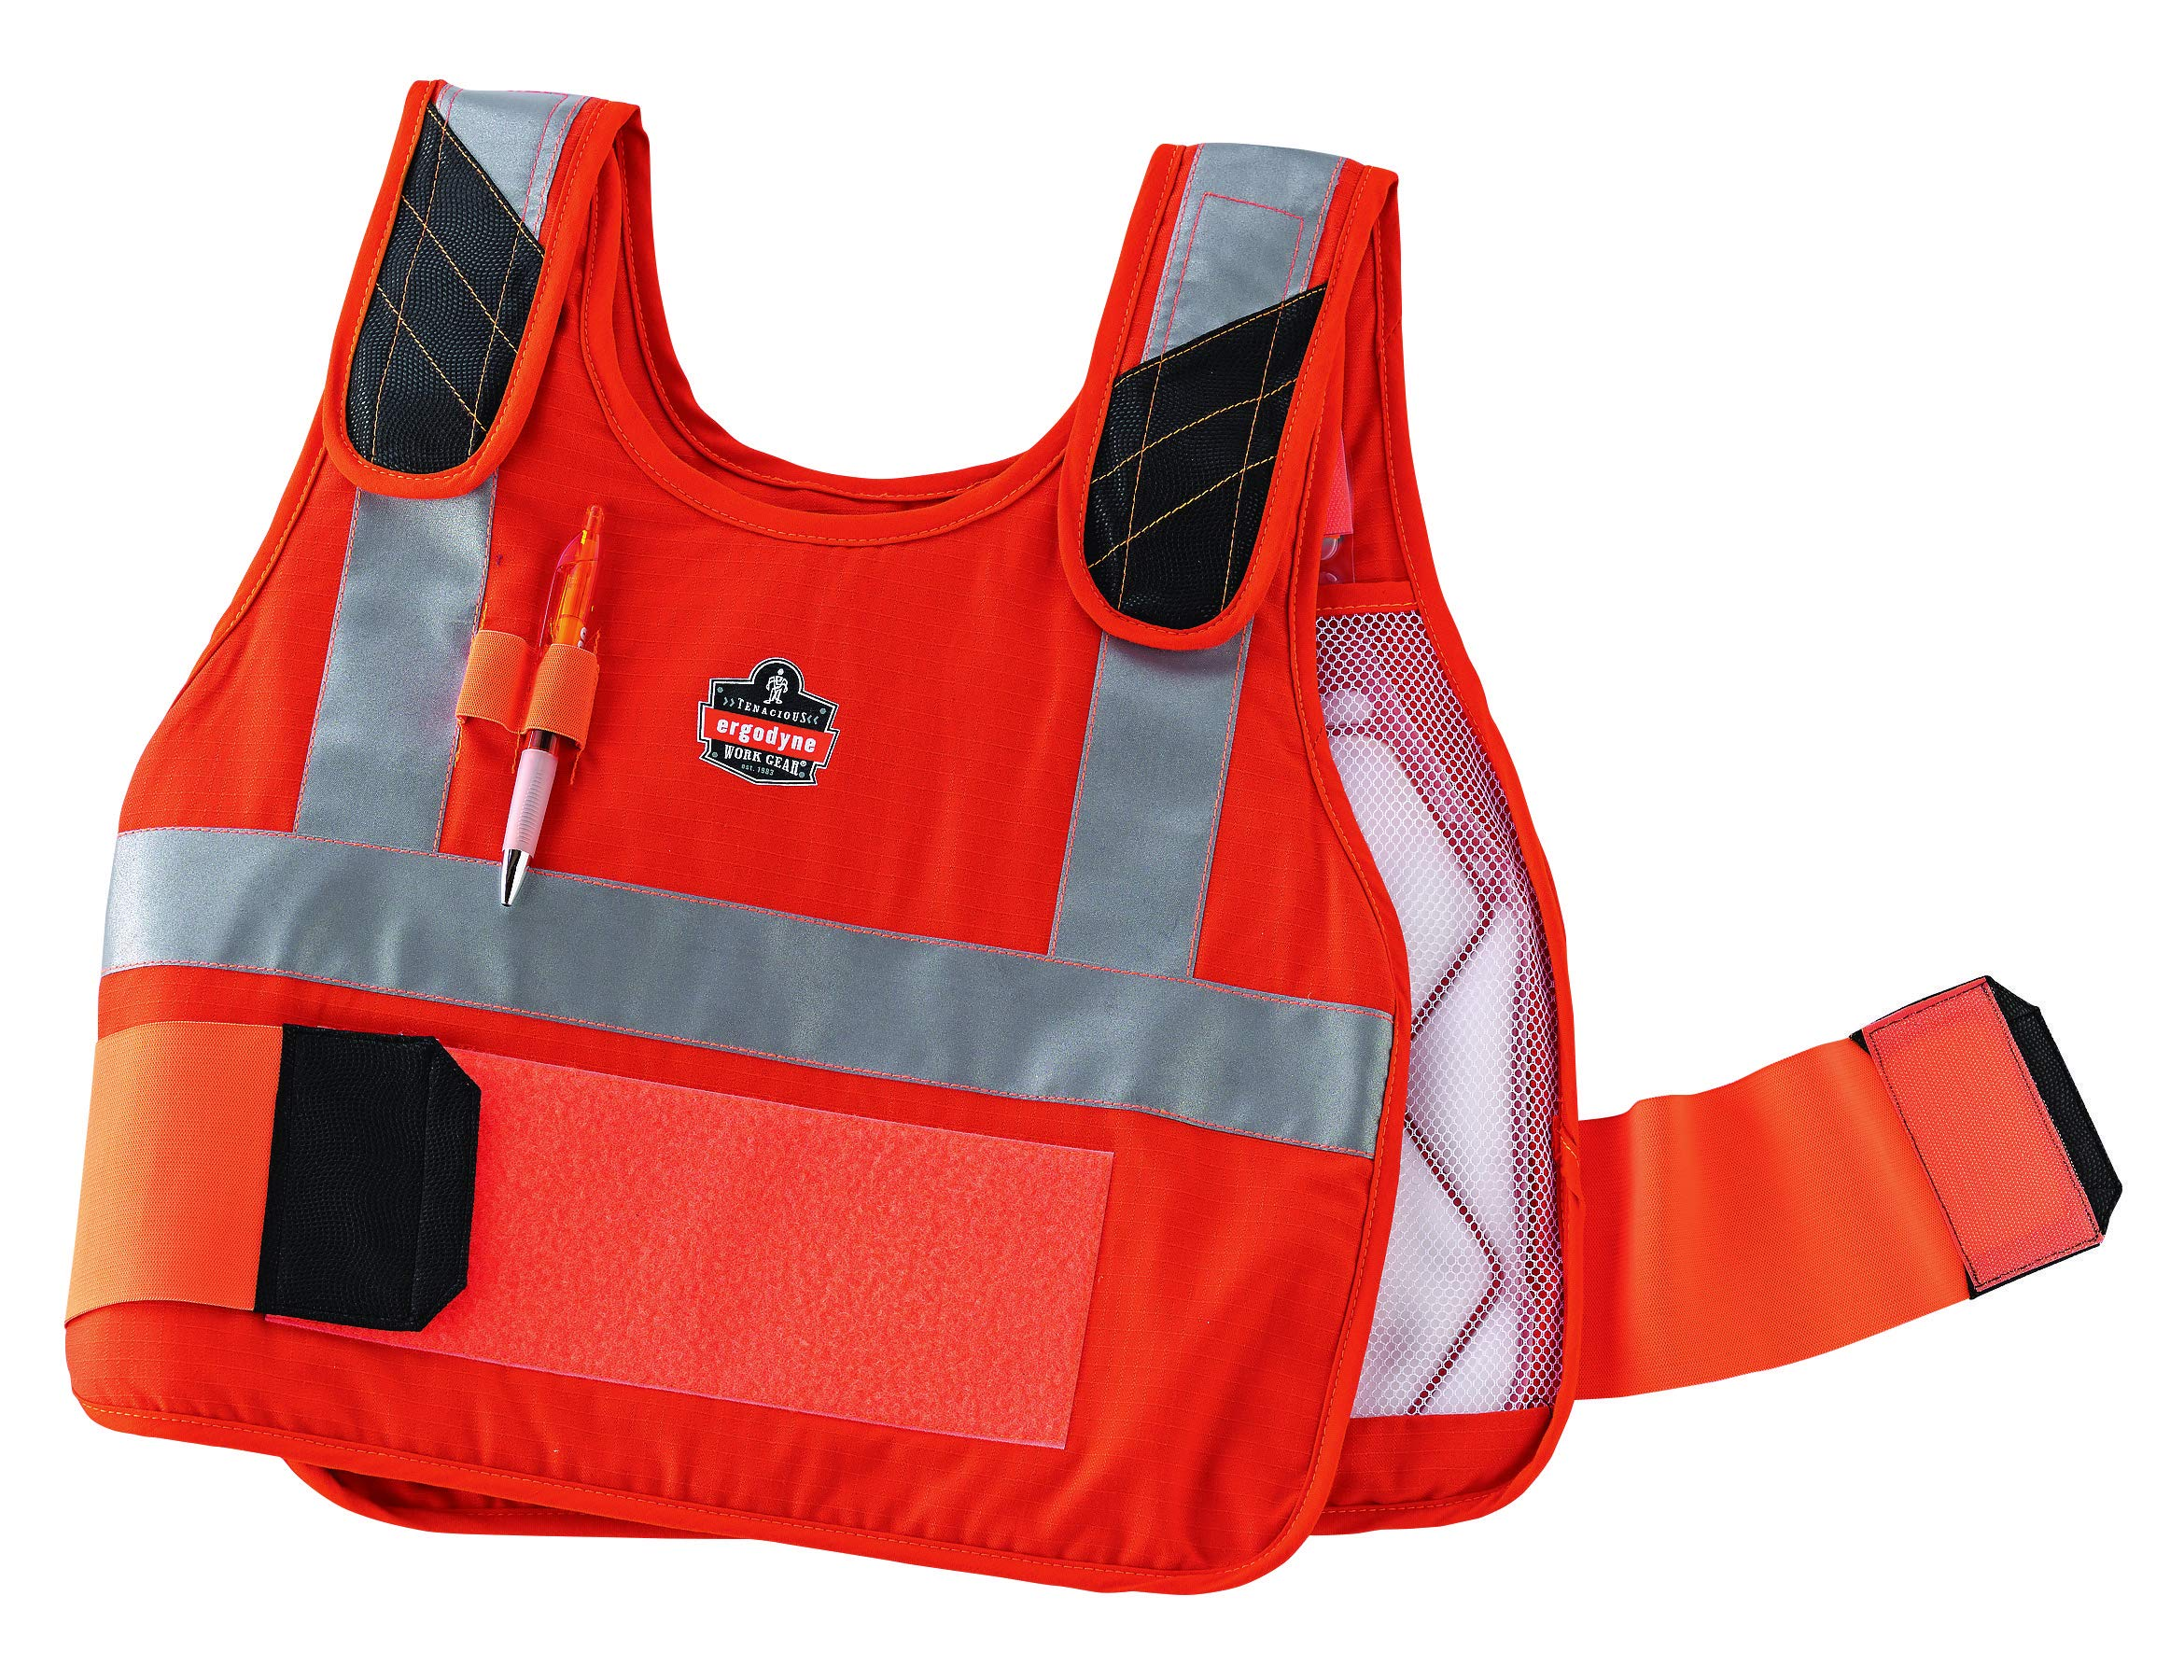 Ergodyne Chill-Its 6215 Fire Resistant/Rated High Visibility Cooling Vest, L/XL, Orange by Ergodyne (Image #4)